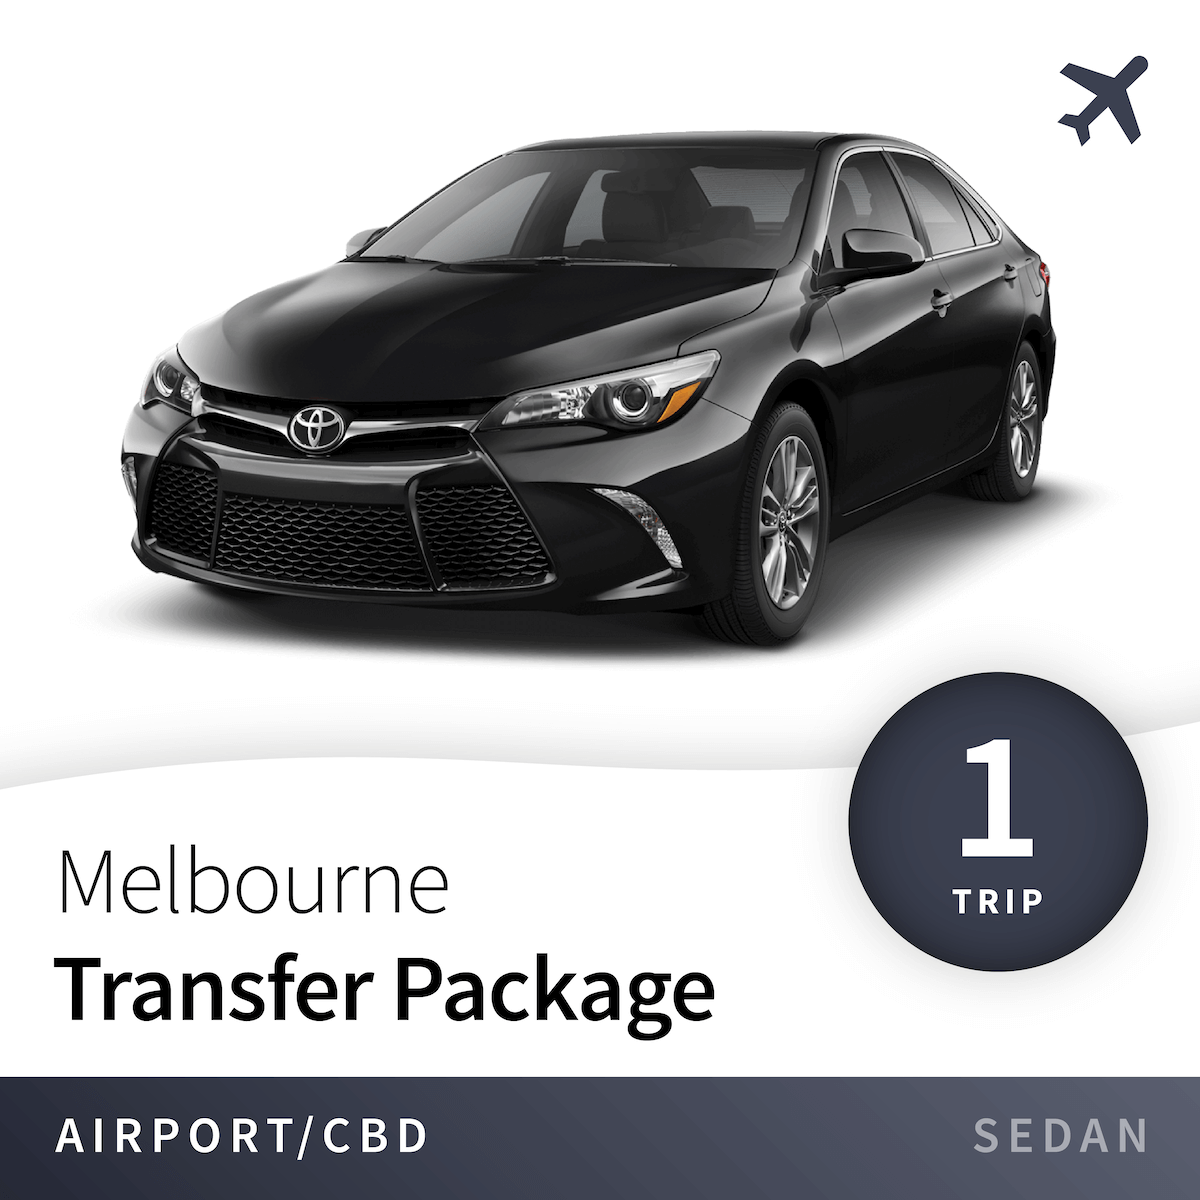 Melbourne Airport Transfer Package - Sedan (1 Trip) 5